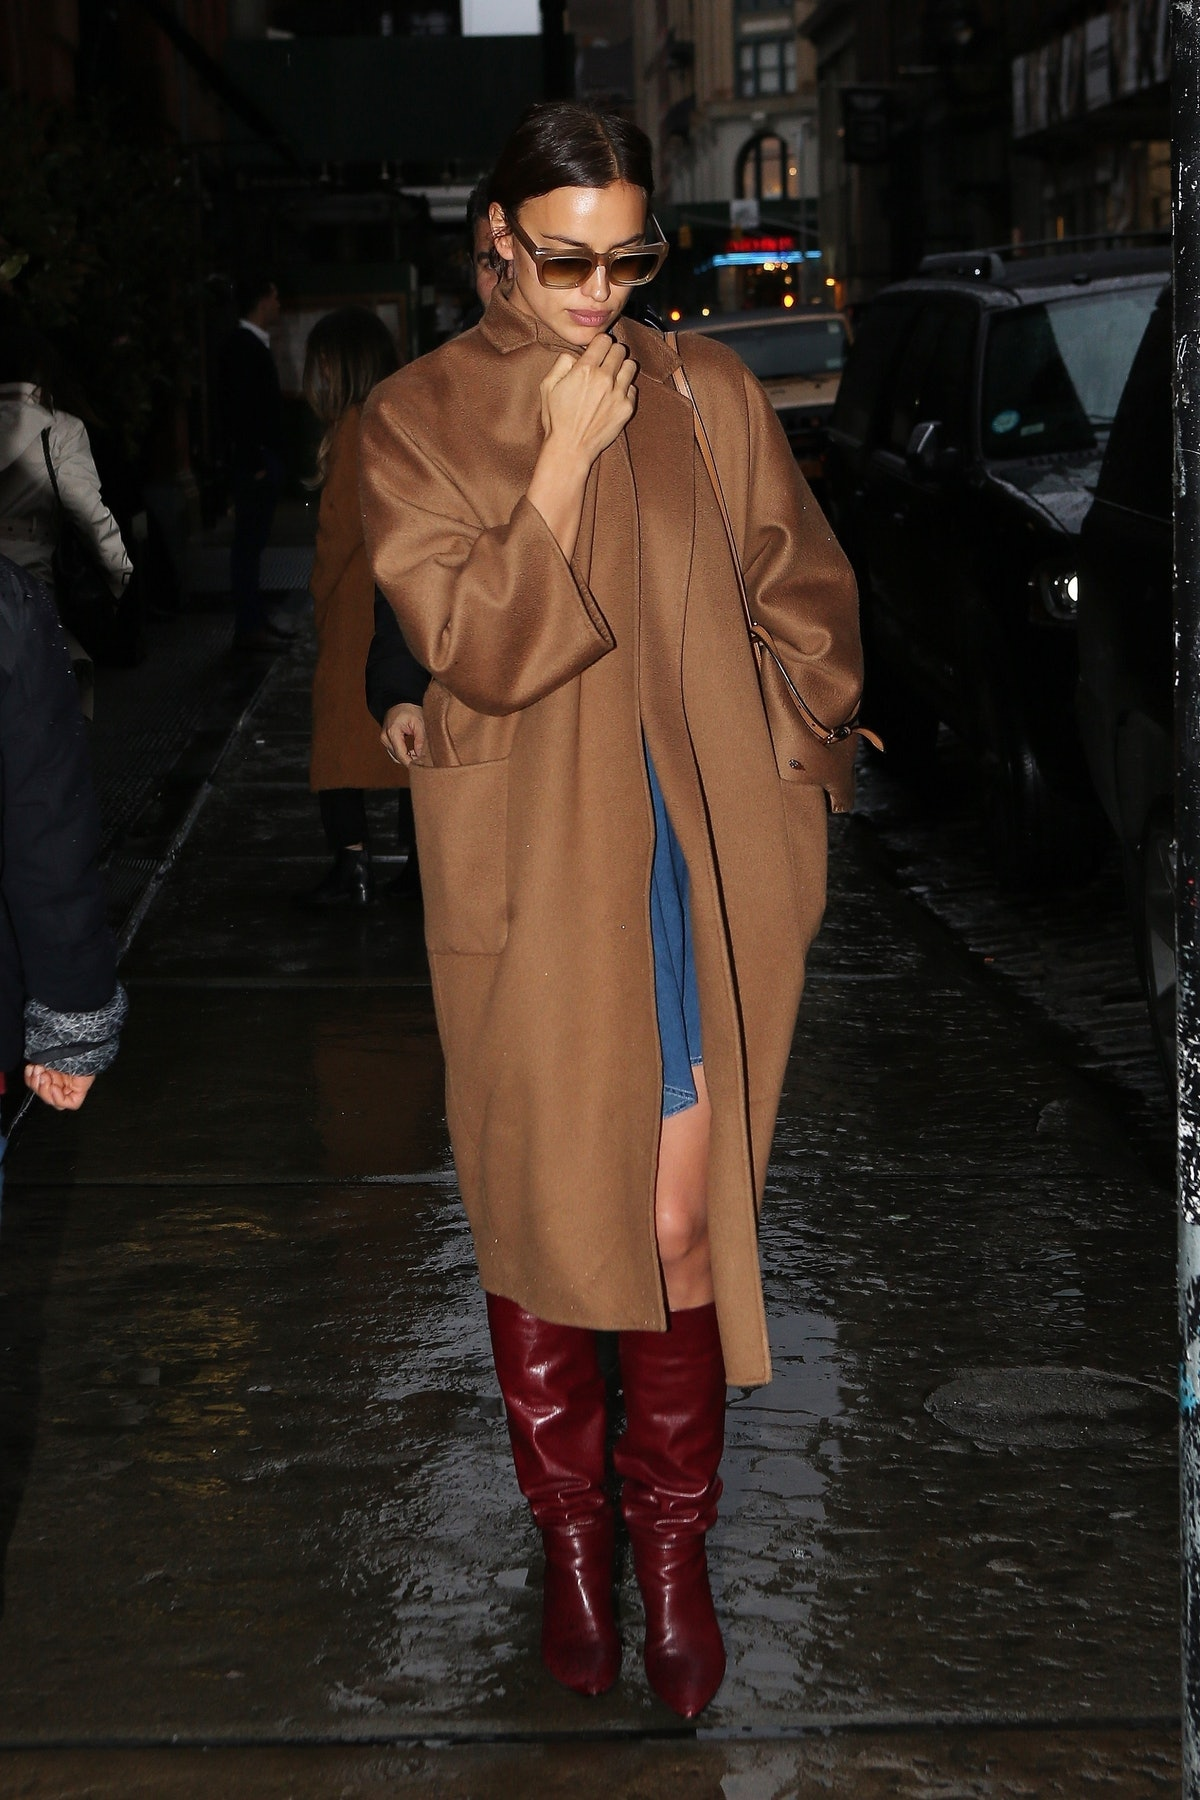 Irina Shayk is spotted leaving her hotel on Sunday. The brunette model and mother bundles up in a ca...